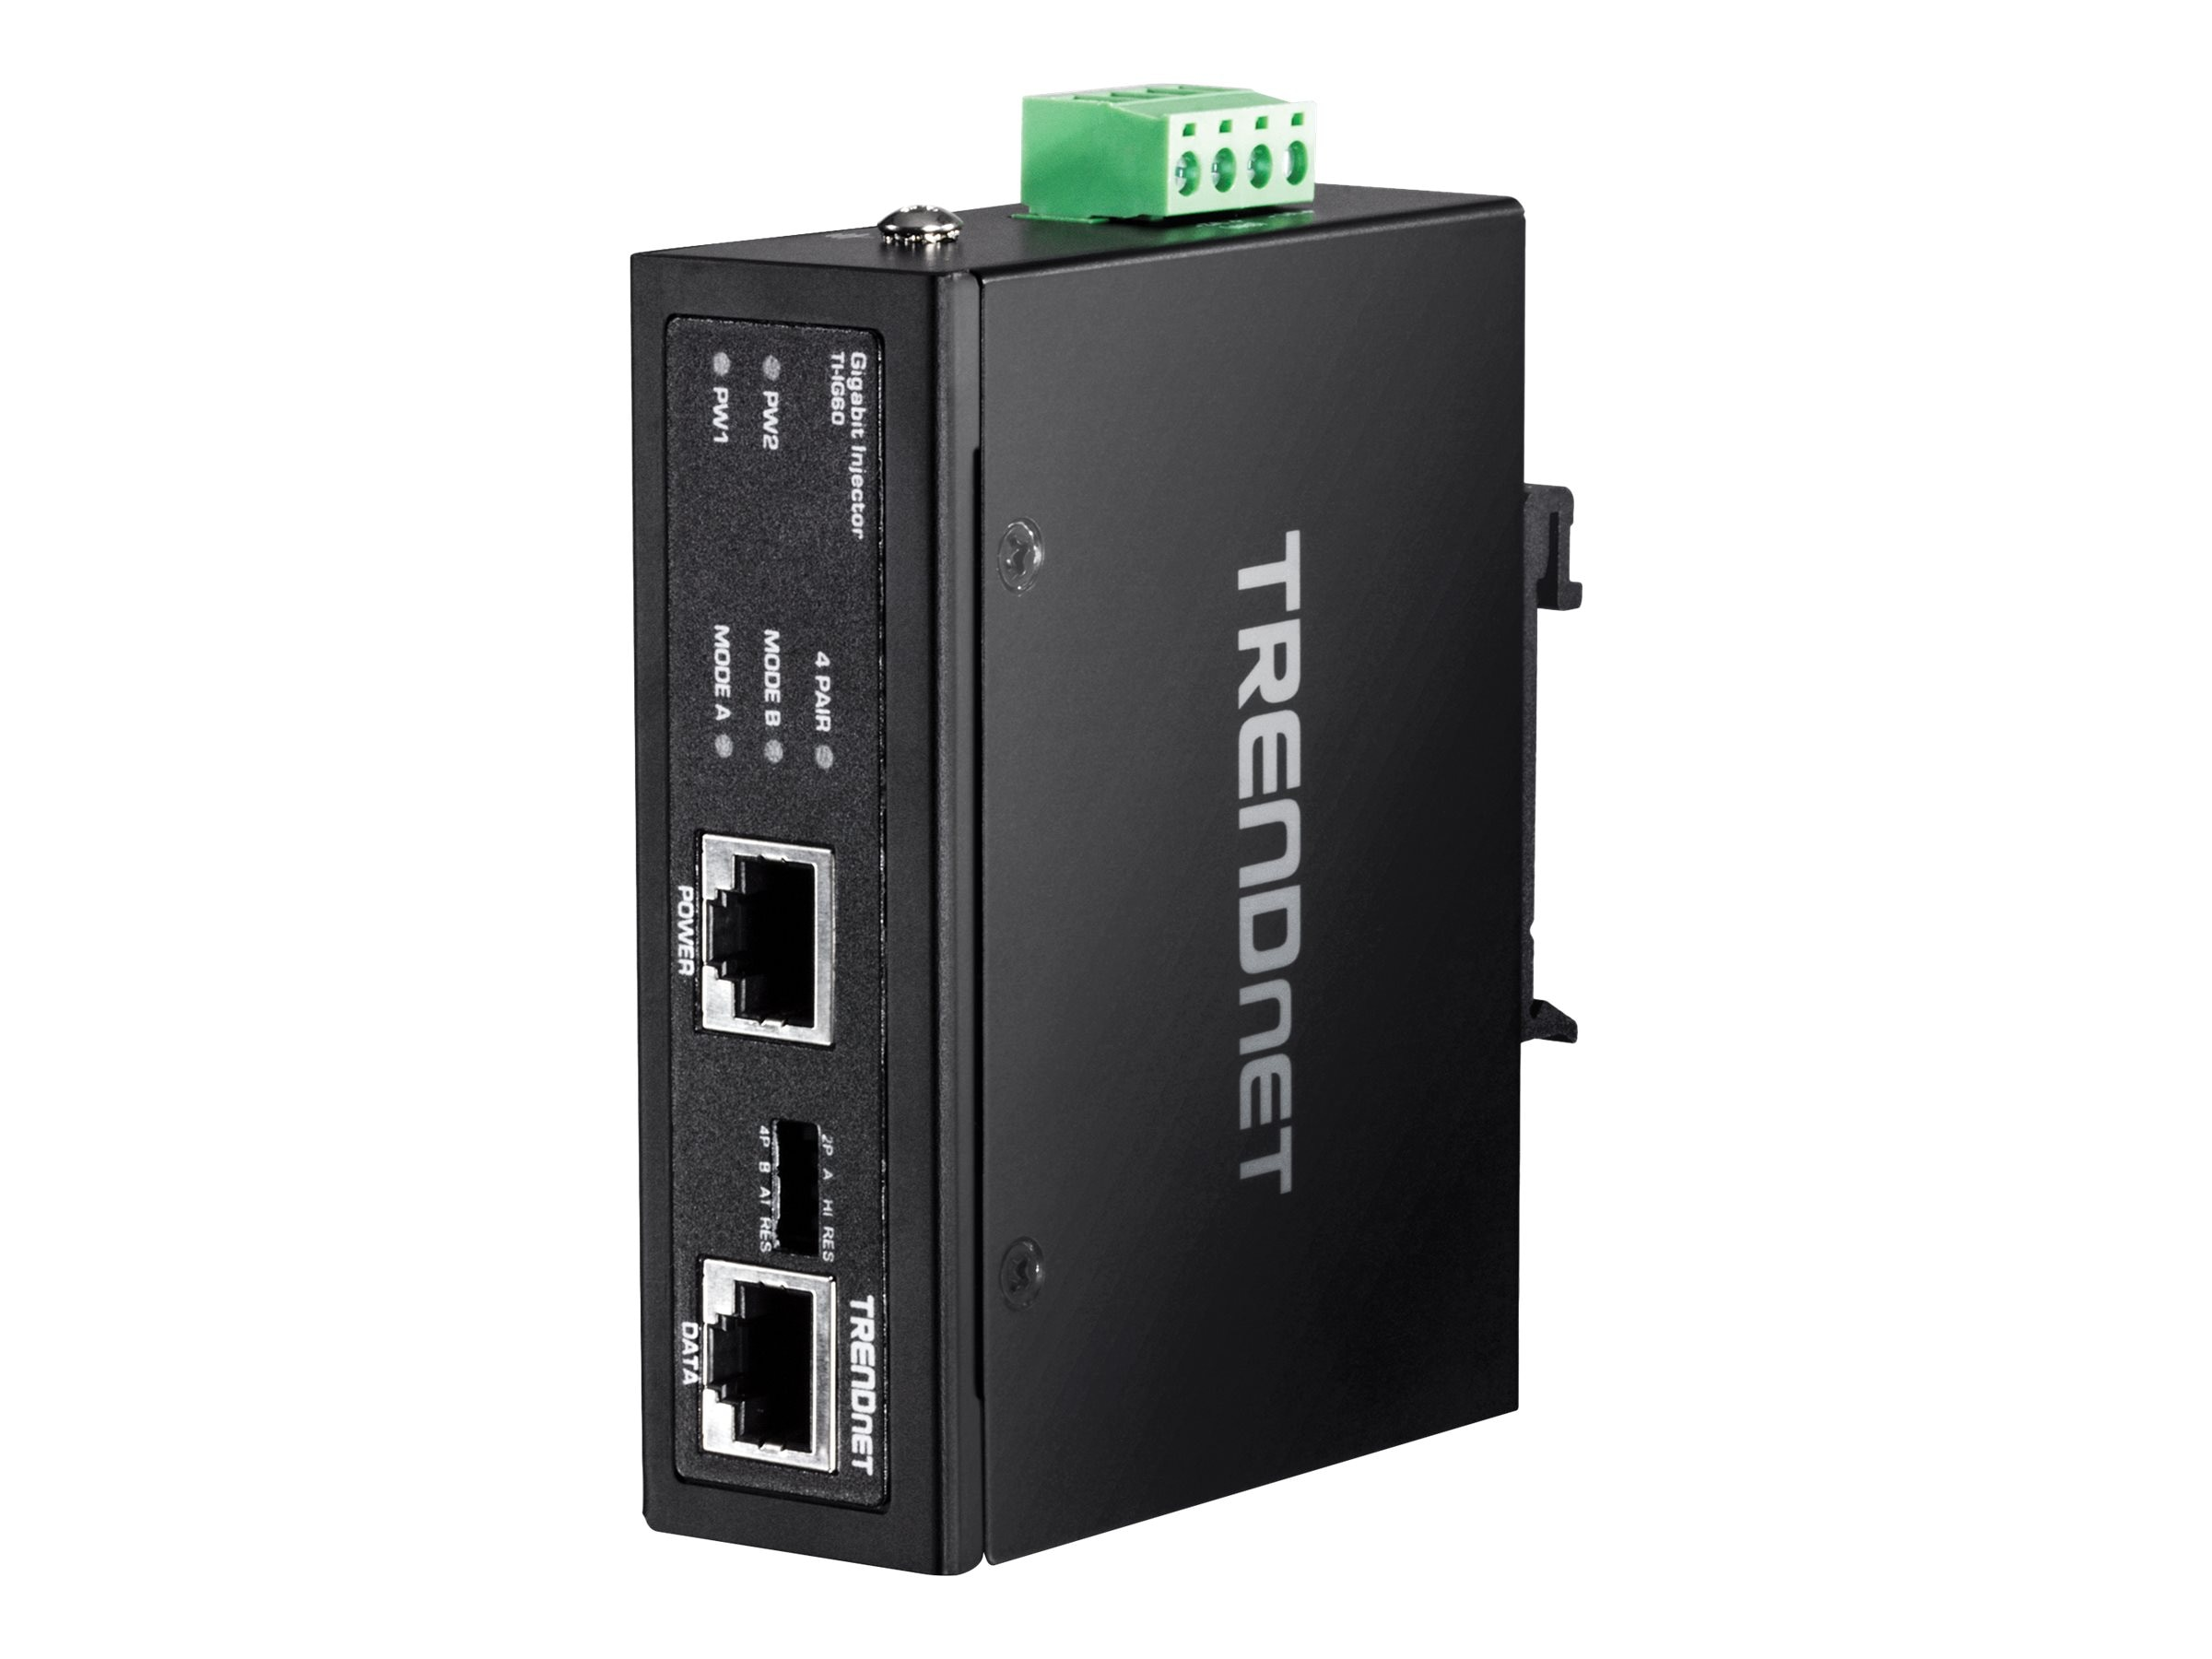 TRENDnet Hardened Industrial 60W Gigabit PoE+ Injector